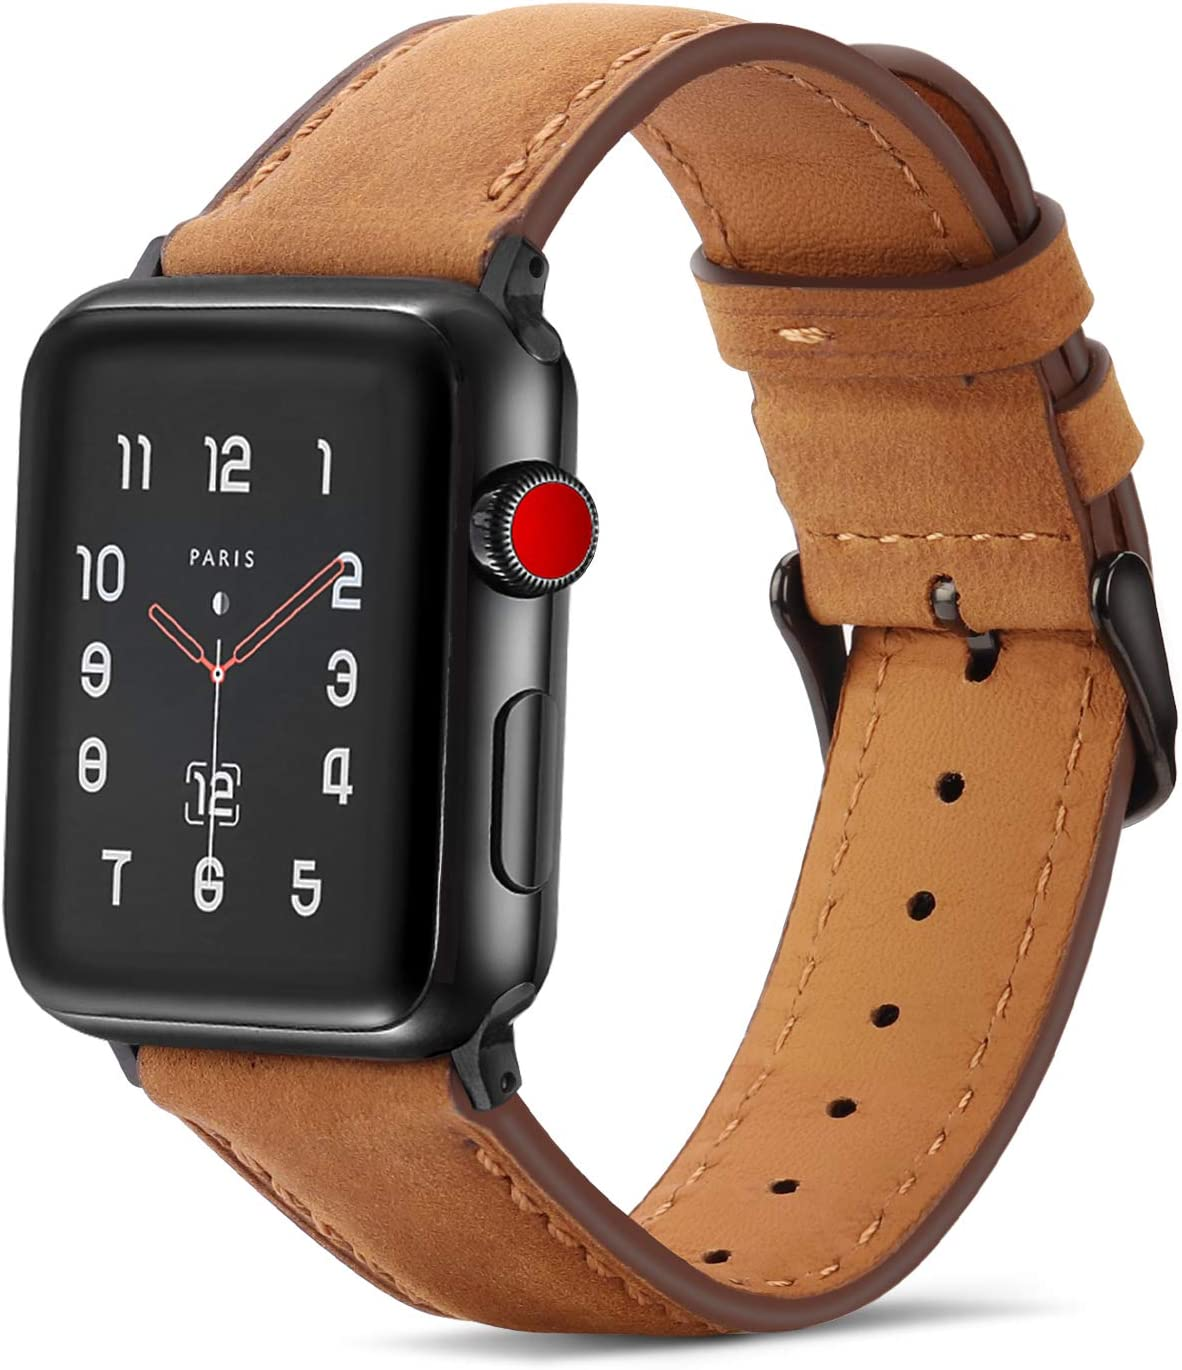 Tasikar Bands Compatible with Apple Watch Band 44mm 42mm Premium Genuine Leather Replacement Band Compatible with Apple Watch SE Series 6 5 4 (44mm) Series 3 2 1 (42mm) - Brown